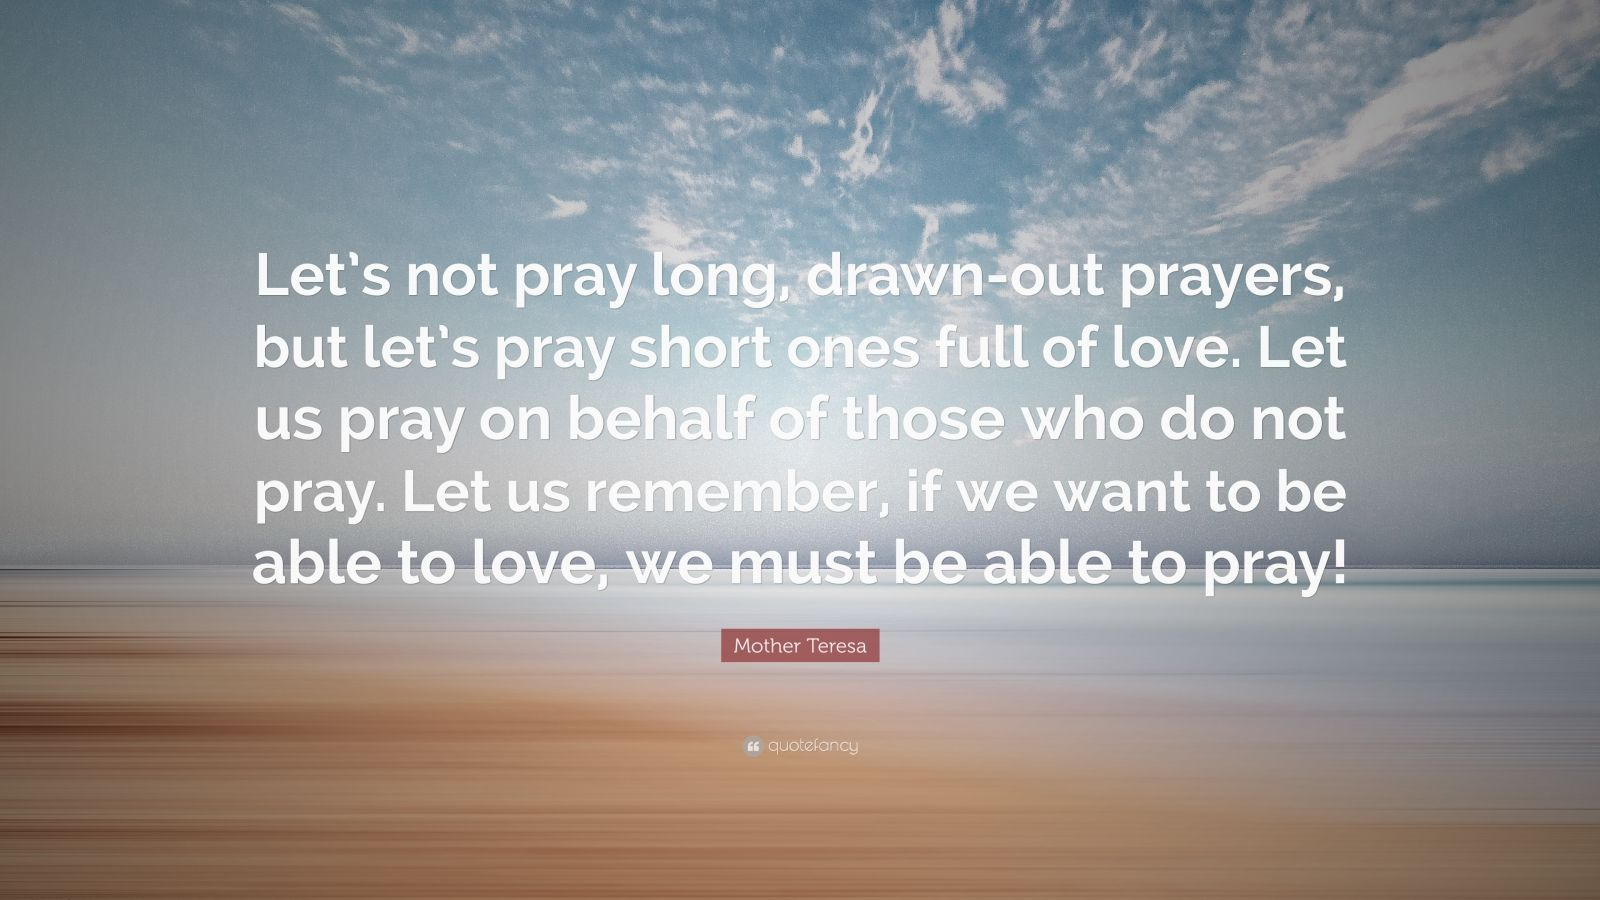 """Mother Teresa Quote: """"Let's not pray long, drawn-out prayers, but let's pray short ones full of love. Let us pray on behalf of those who do not pray. Let us remember, if we want to be able to love, we must be able to pray!"""""""